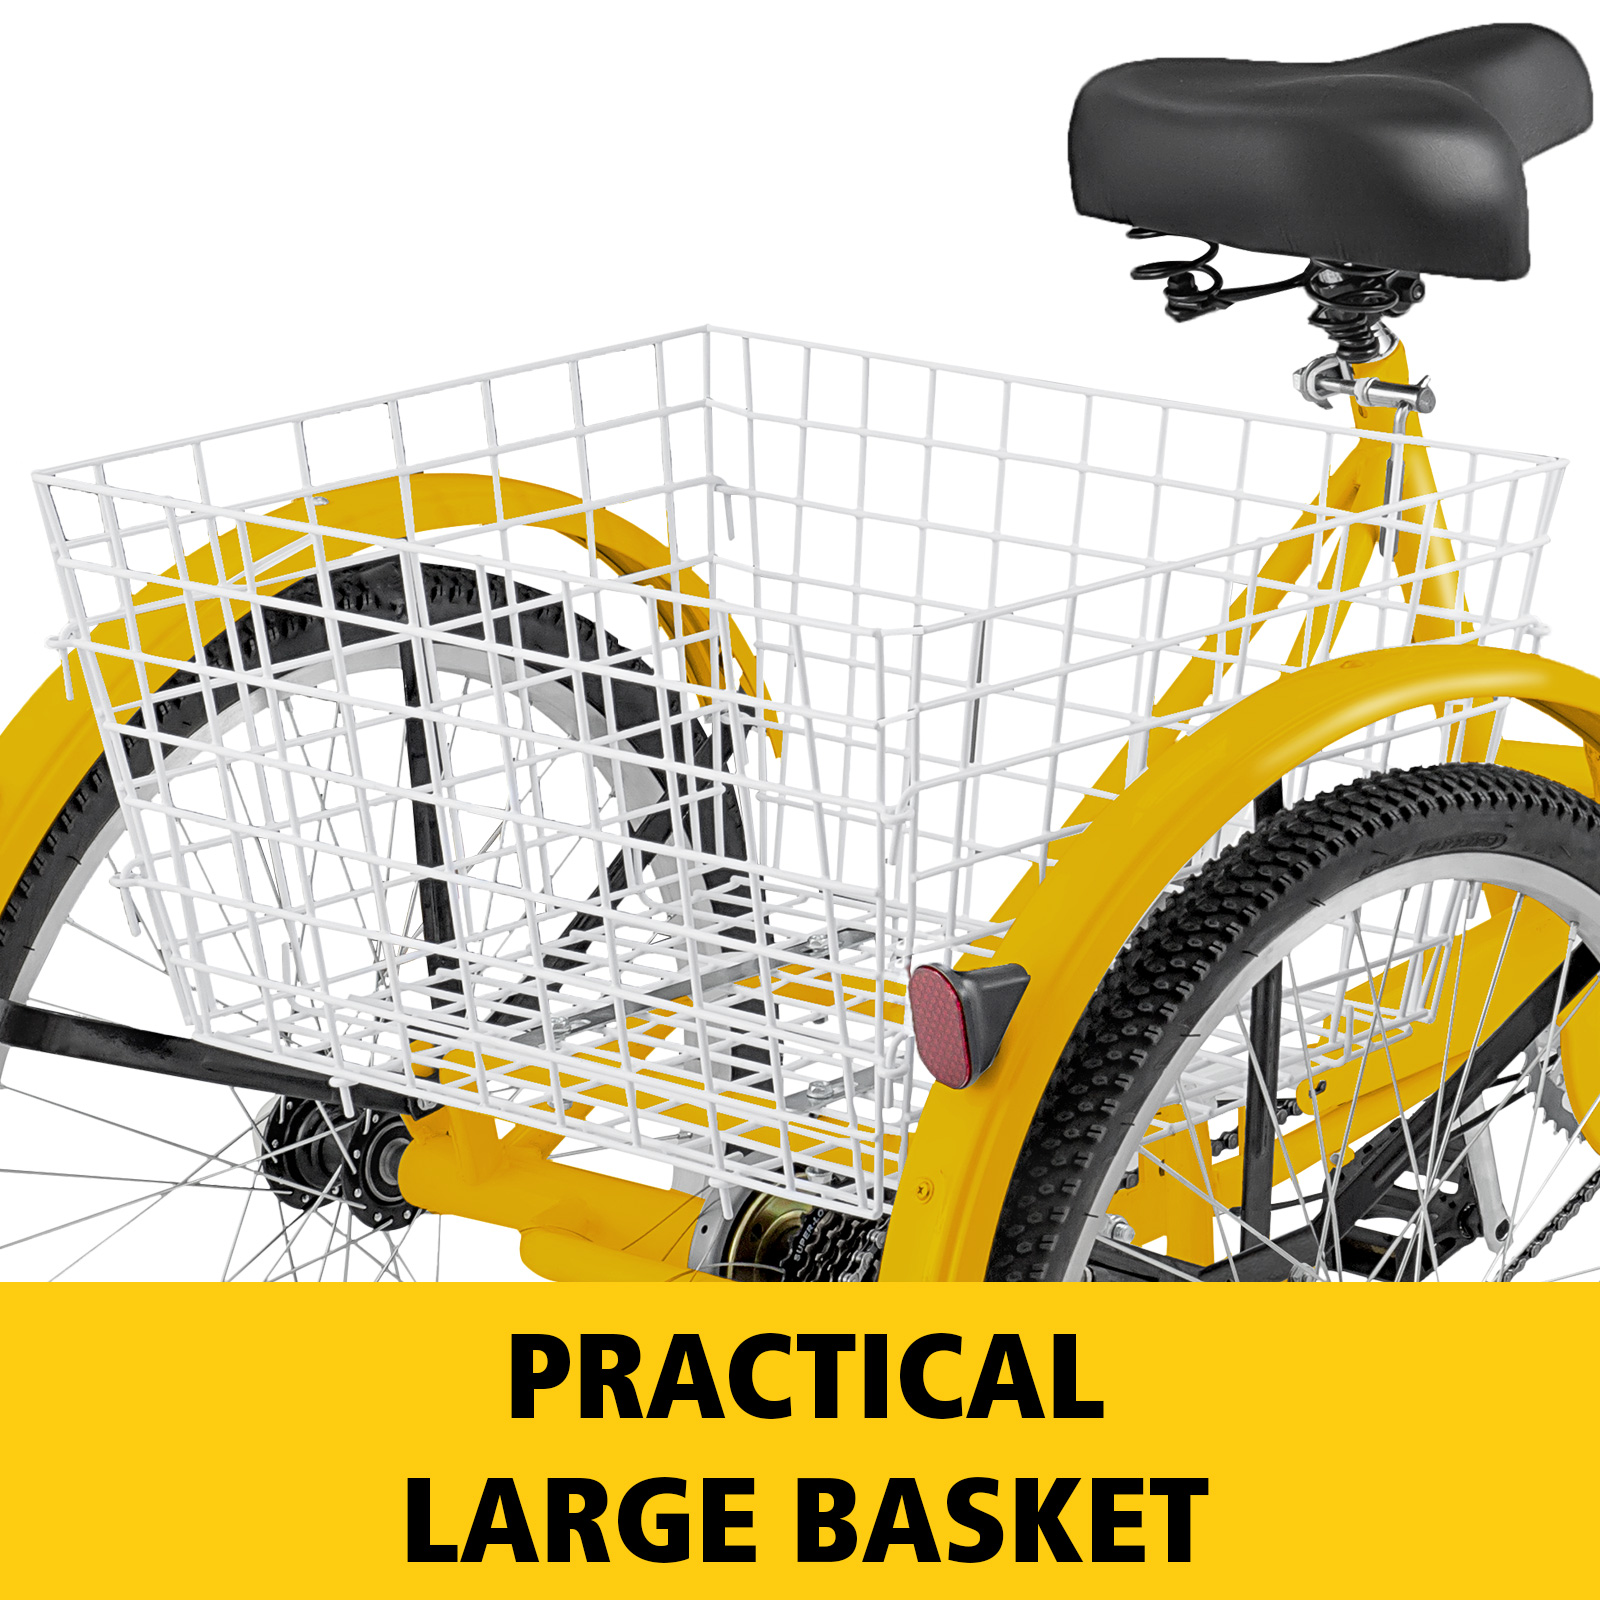 20-24-26-034-Adult-Tricycle-1-7-Speed-3-Wheel-Large-Basket-For-Shopping-Optional thumbnail 319